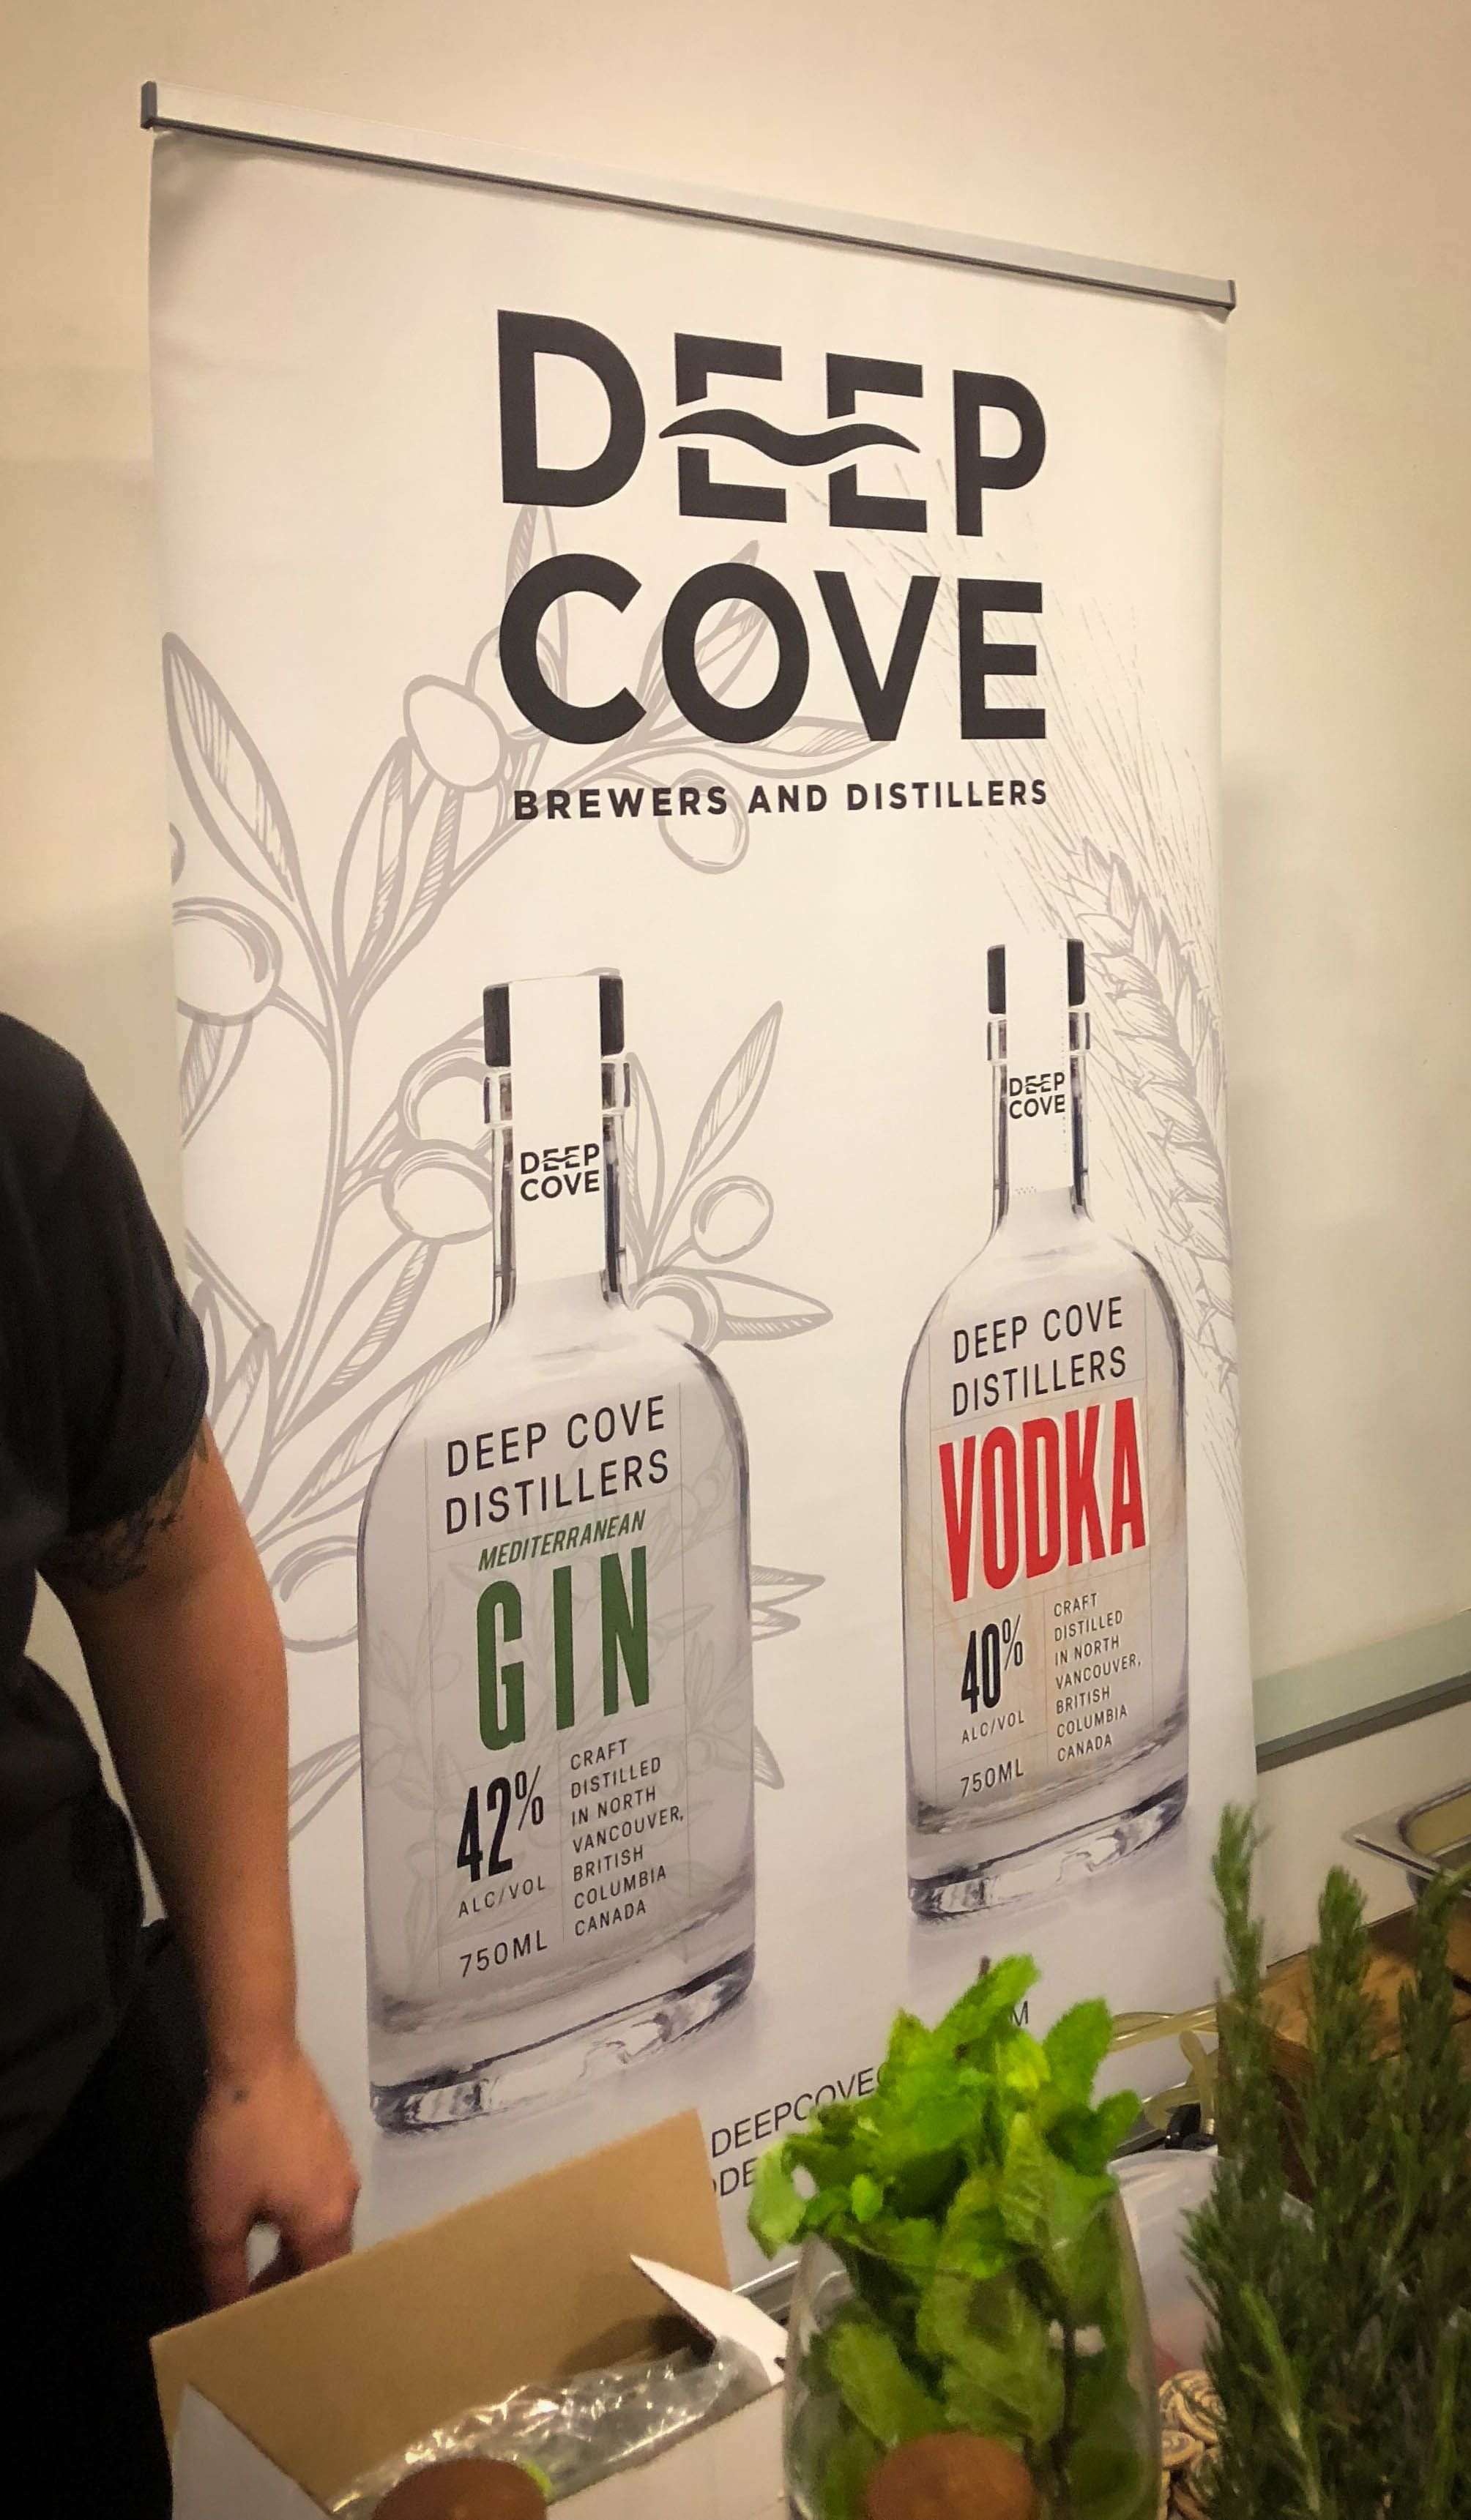 Vancouver's North Shore Craft Beer Week | Deep Cove Spirits